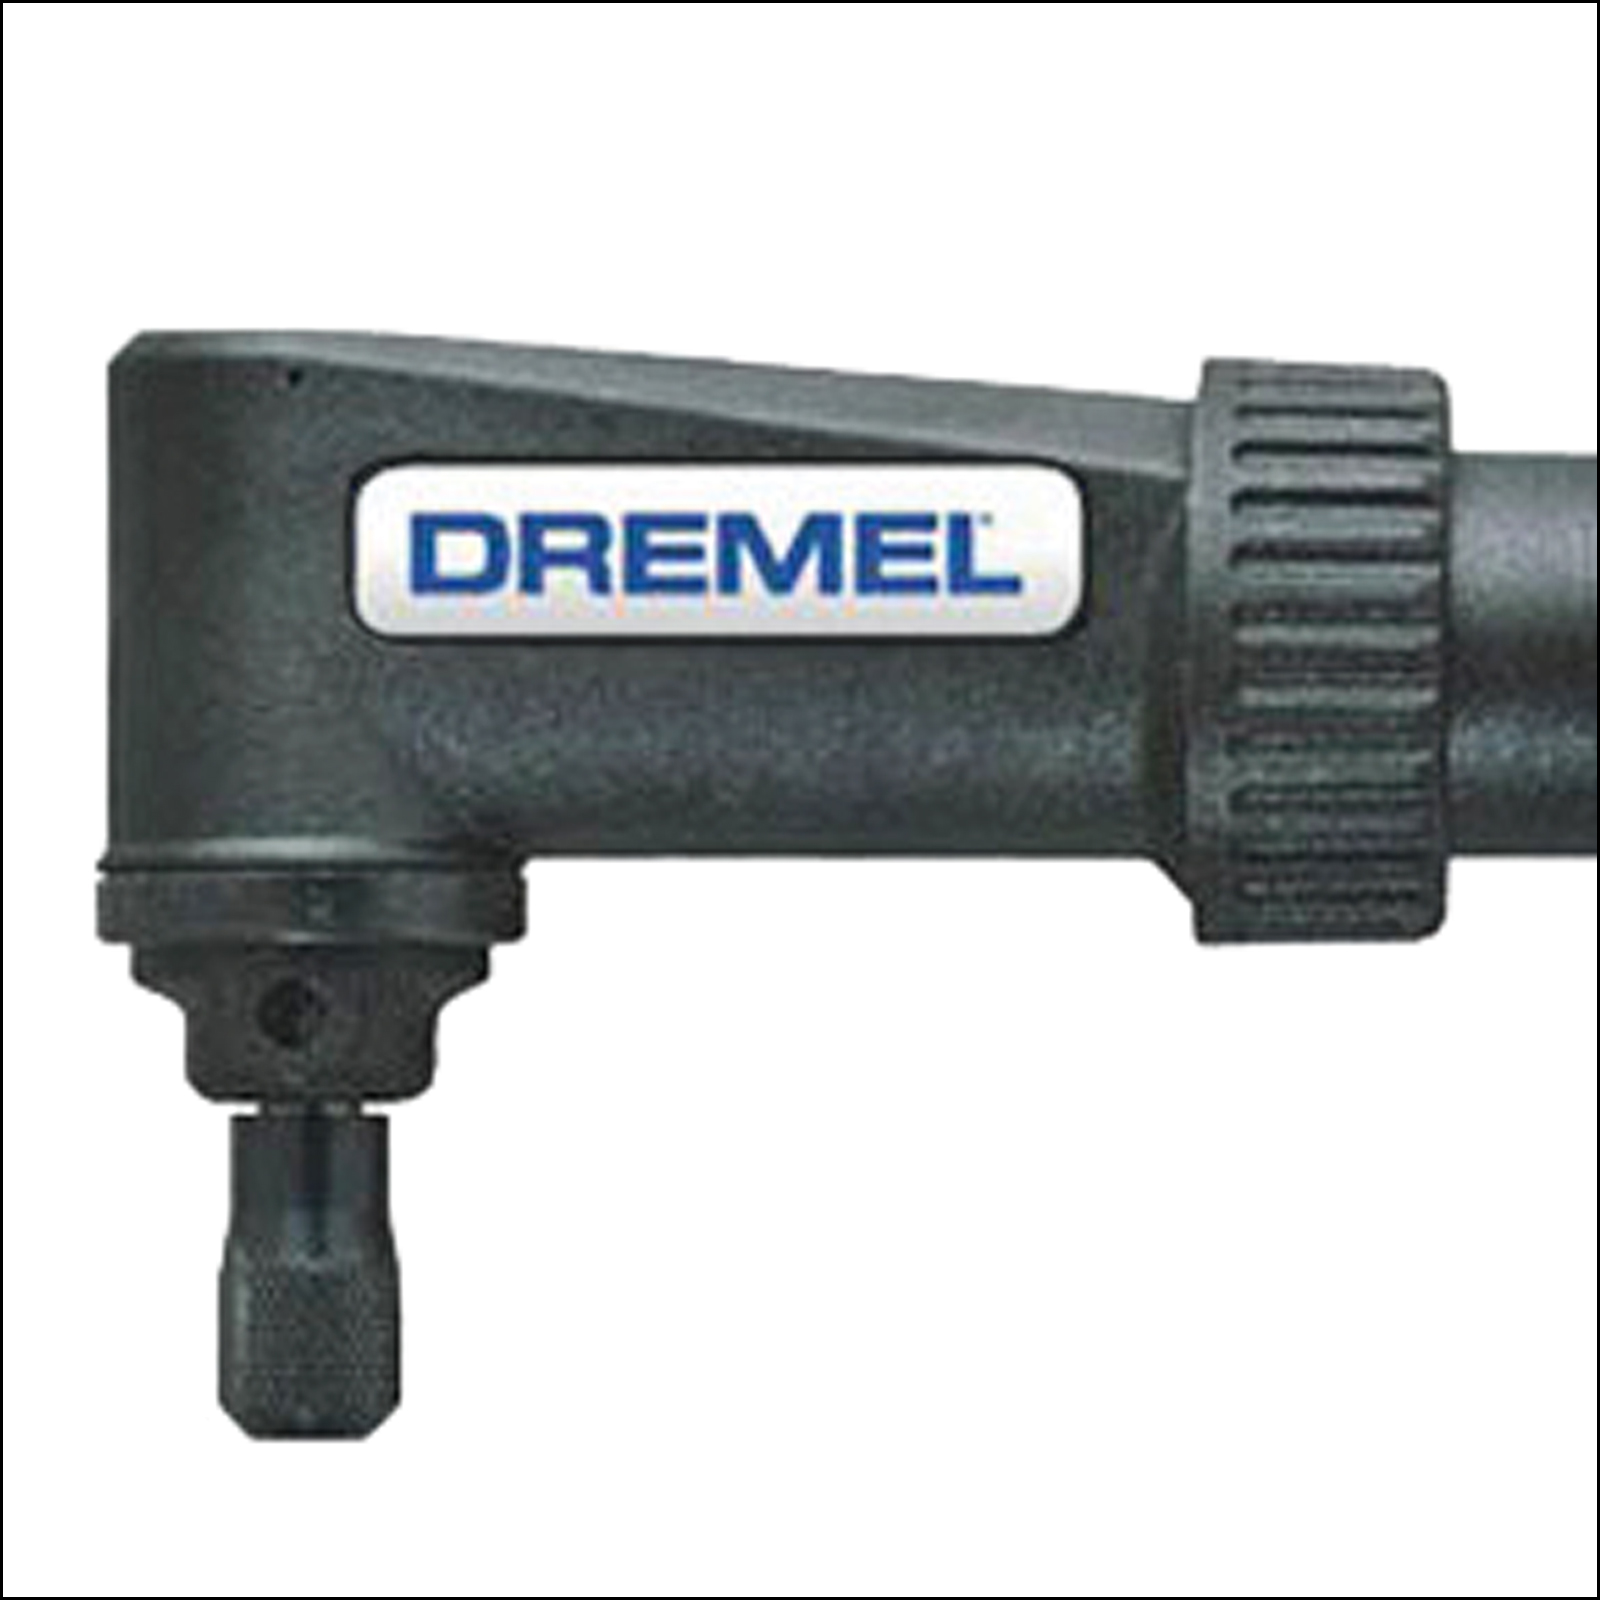 dremel right angle attachment. Black Bedroom Furniture Sets. Home Design Ideas